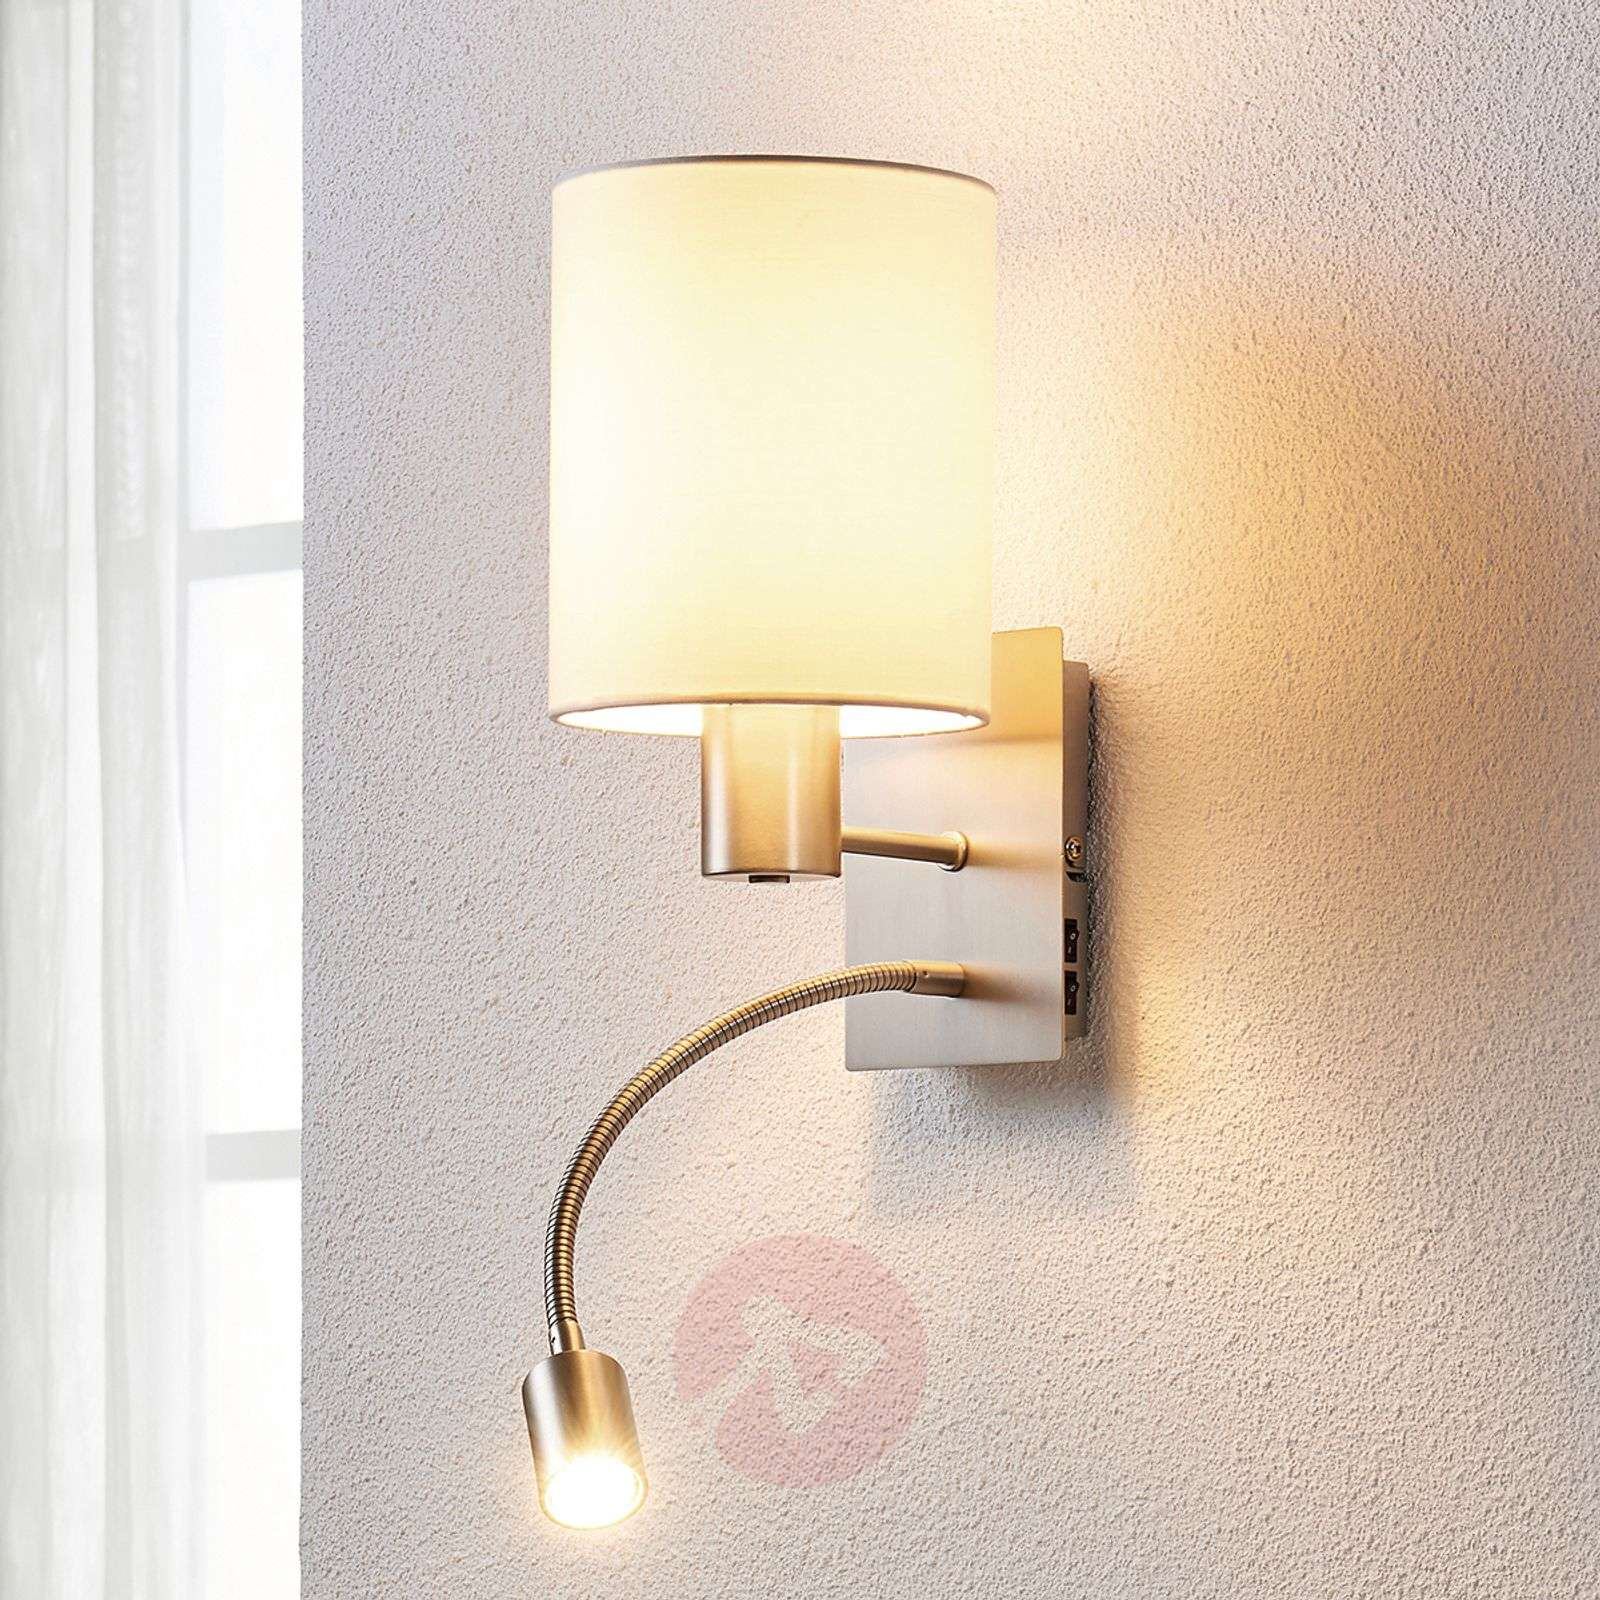 Acquista applique di stoffa shajan con luce di lettura led